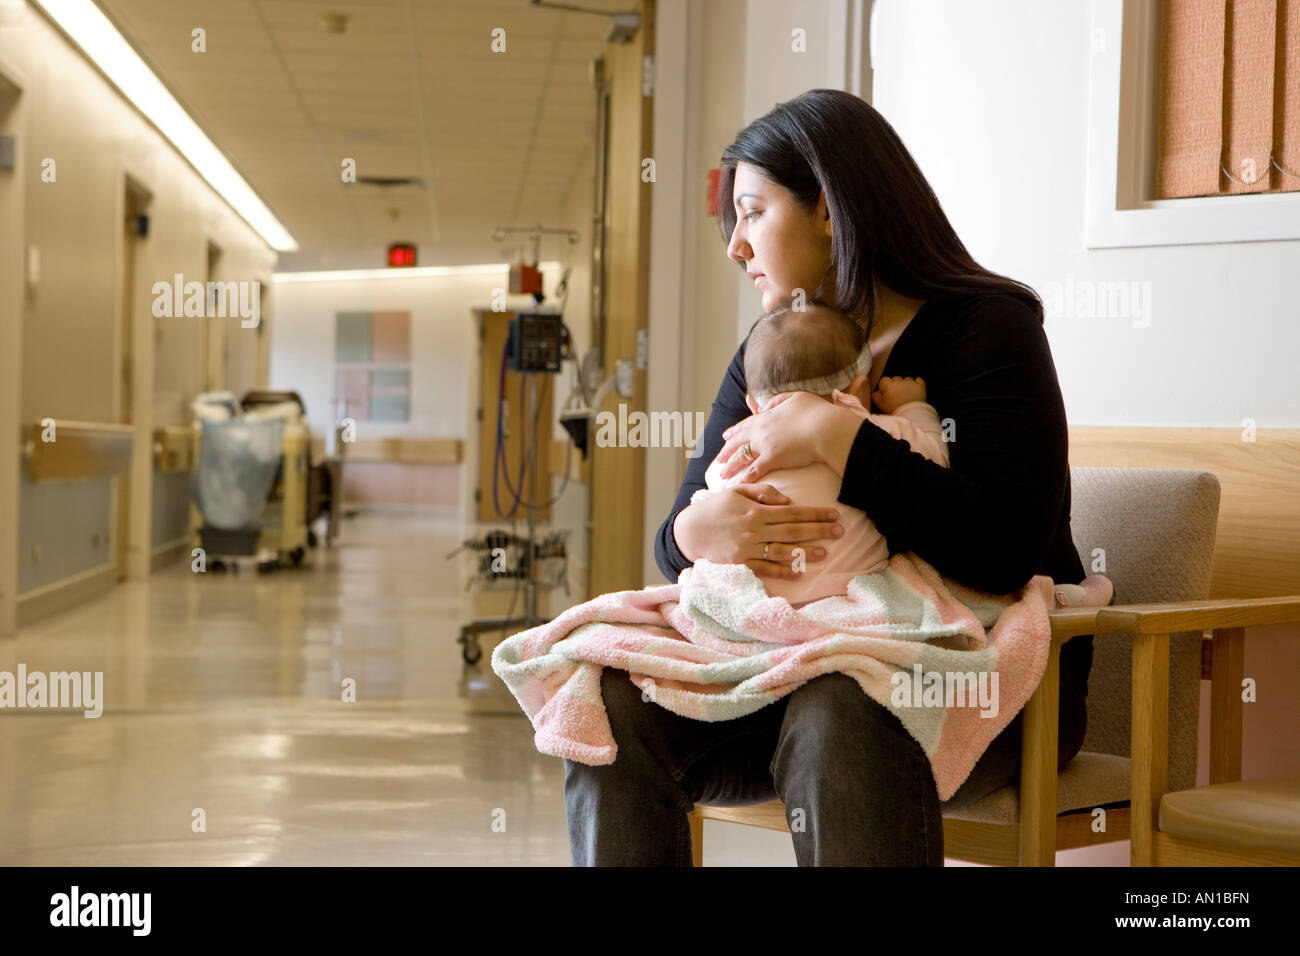 Young woman with baby in the hospital - Stock Image